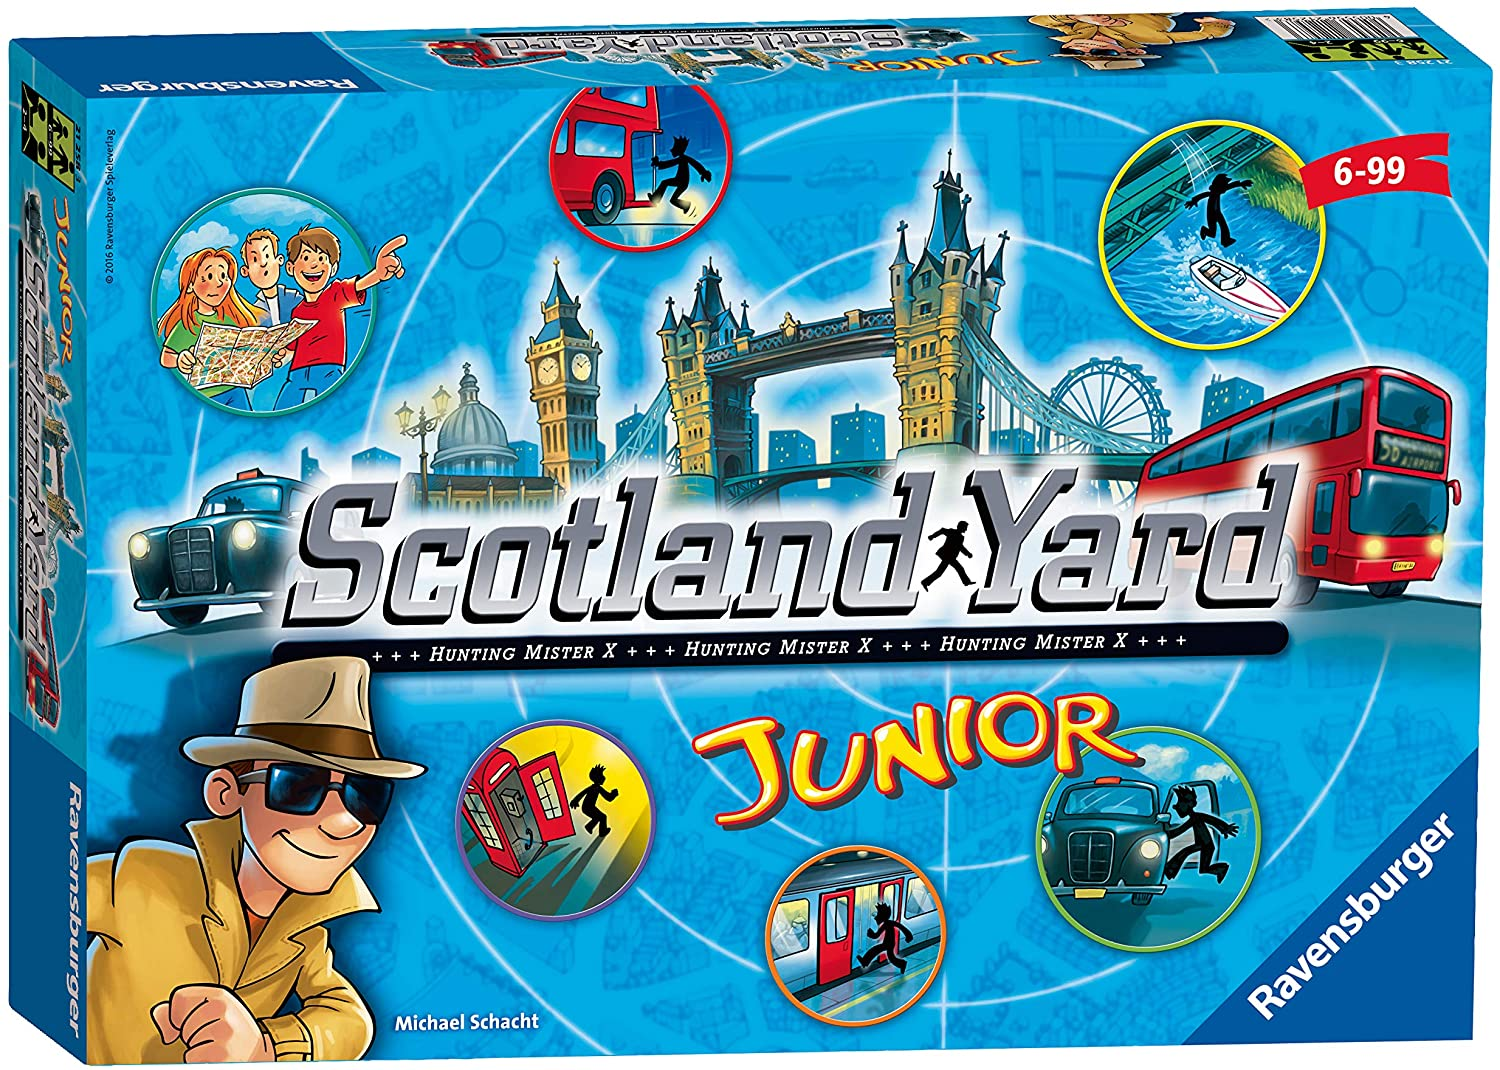 Ravensburger Scotland Yard Junior Family Strategy Board Game